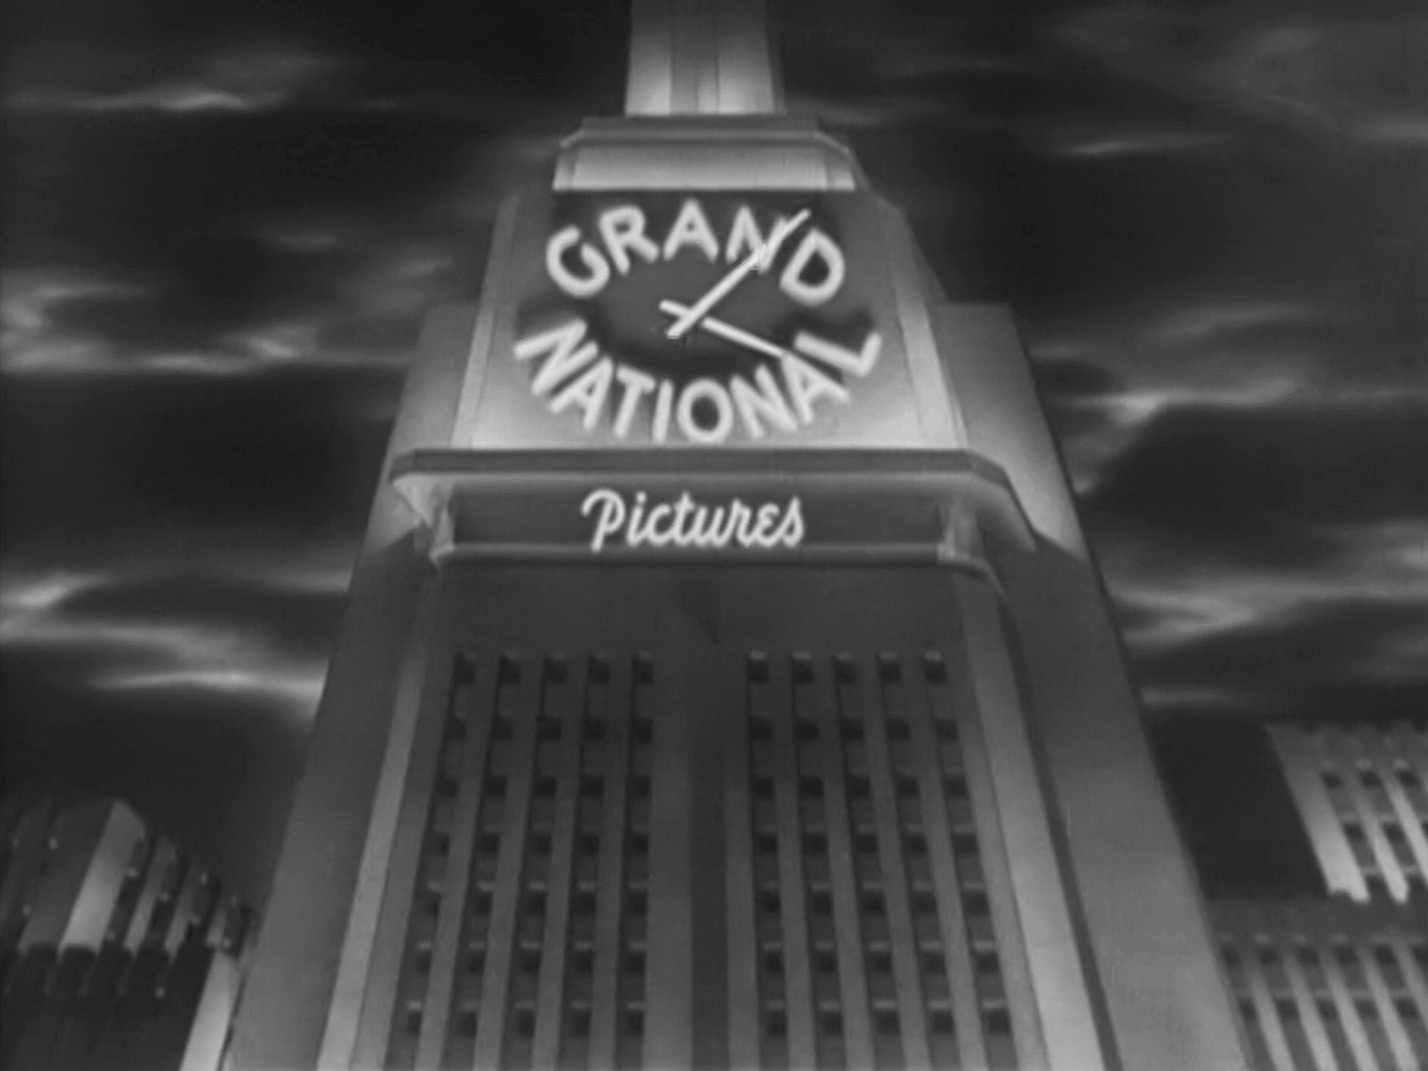 Main title from Four Days (1951) (1). Grand National Pictures